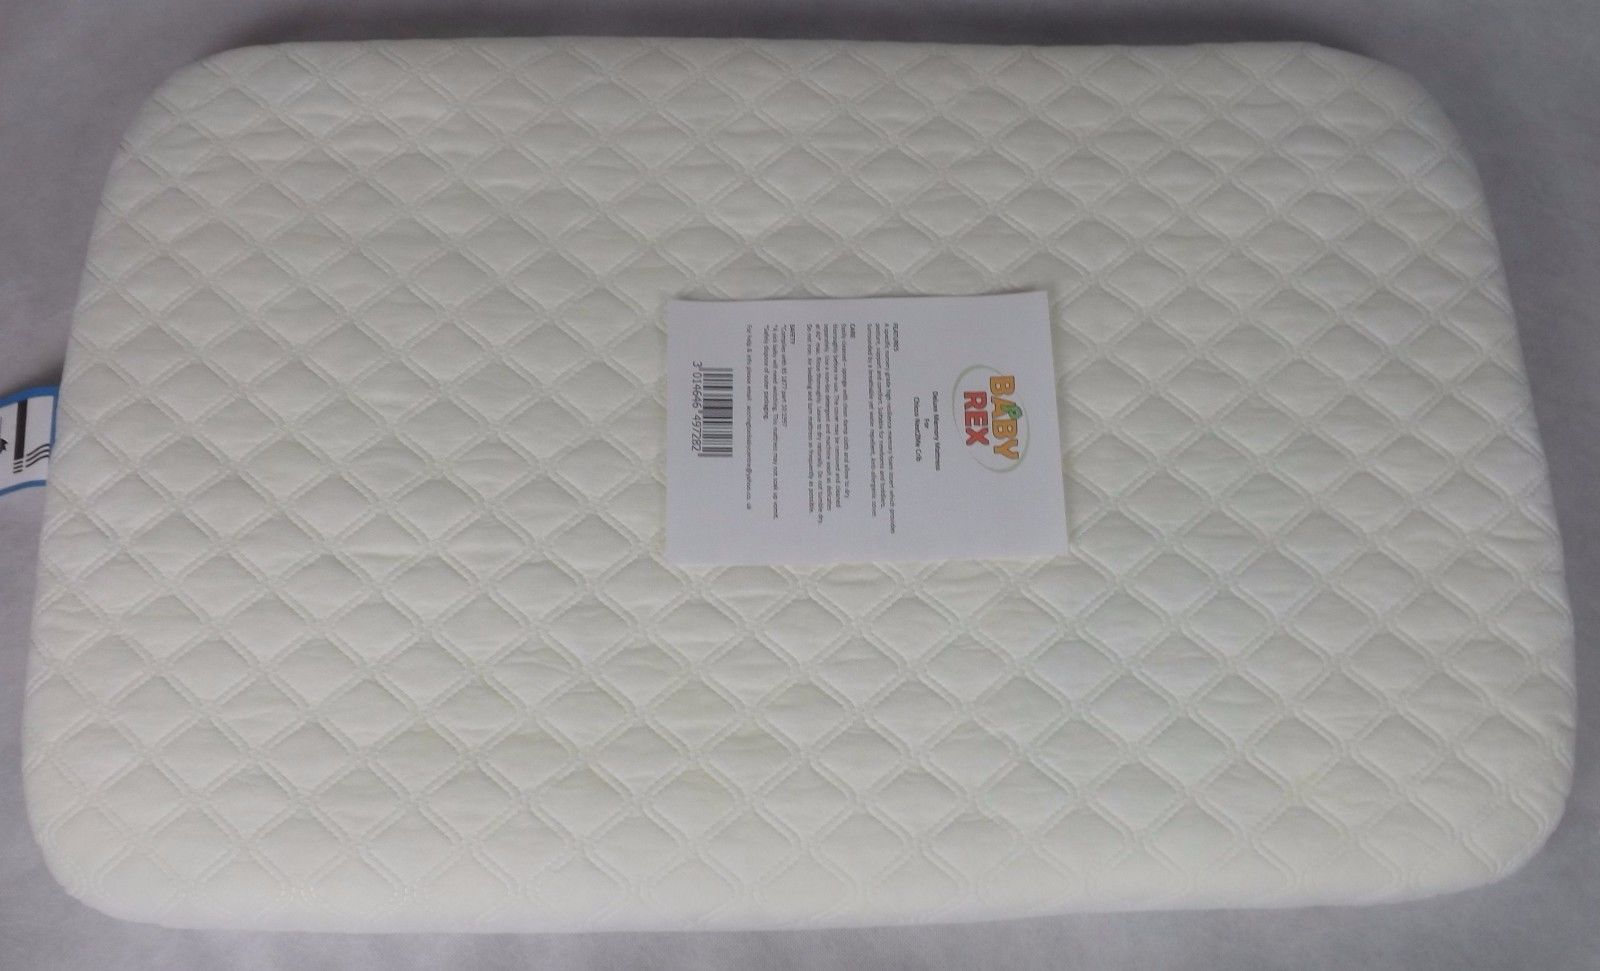 Deluxe Crib Mattress for Chicco Next 2 Me Co-Sleeper Bedside Crib